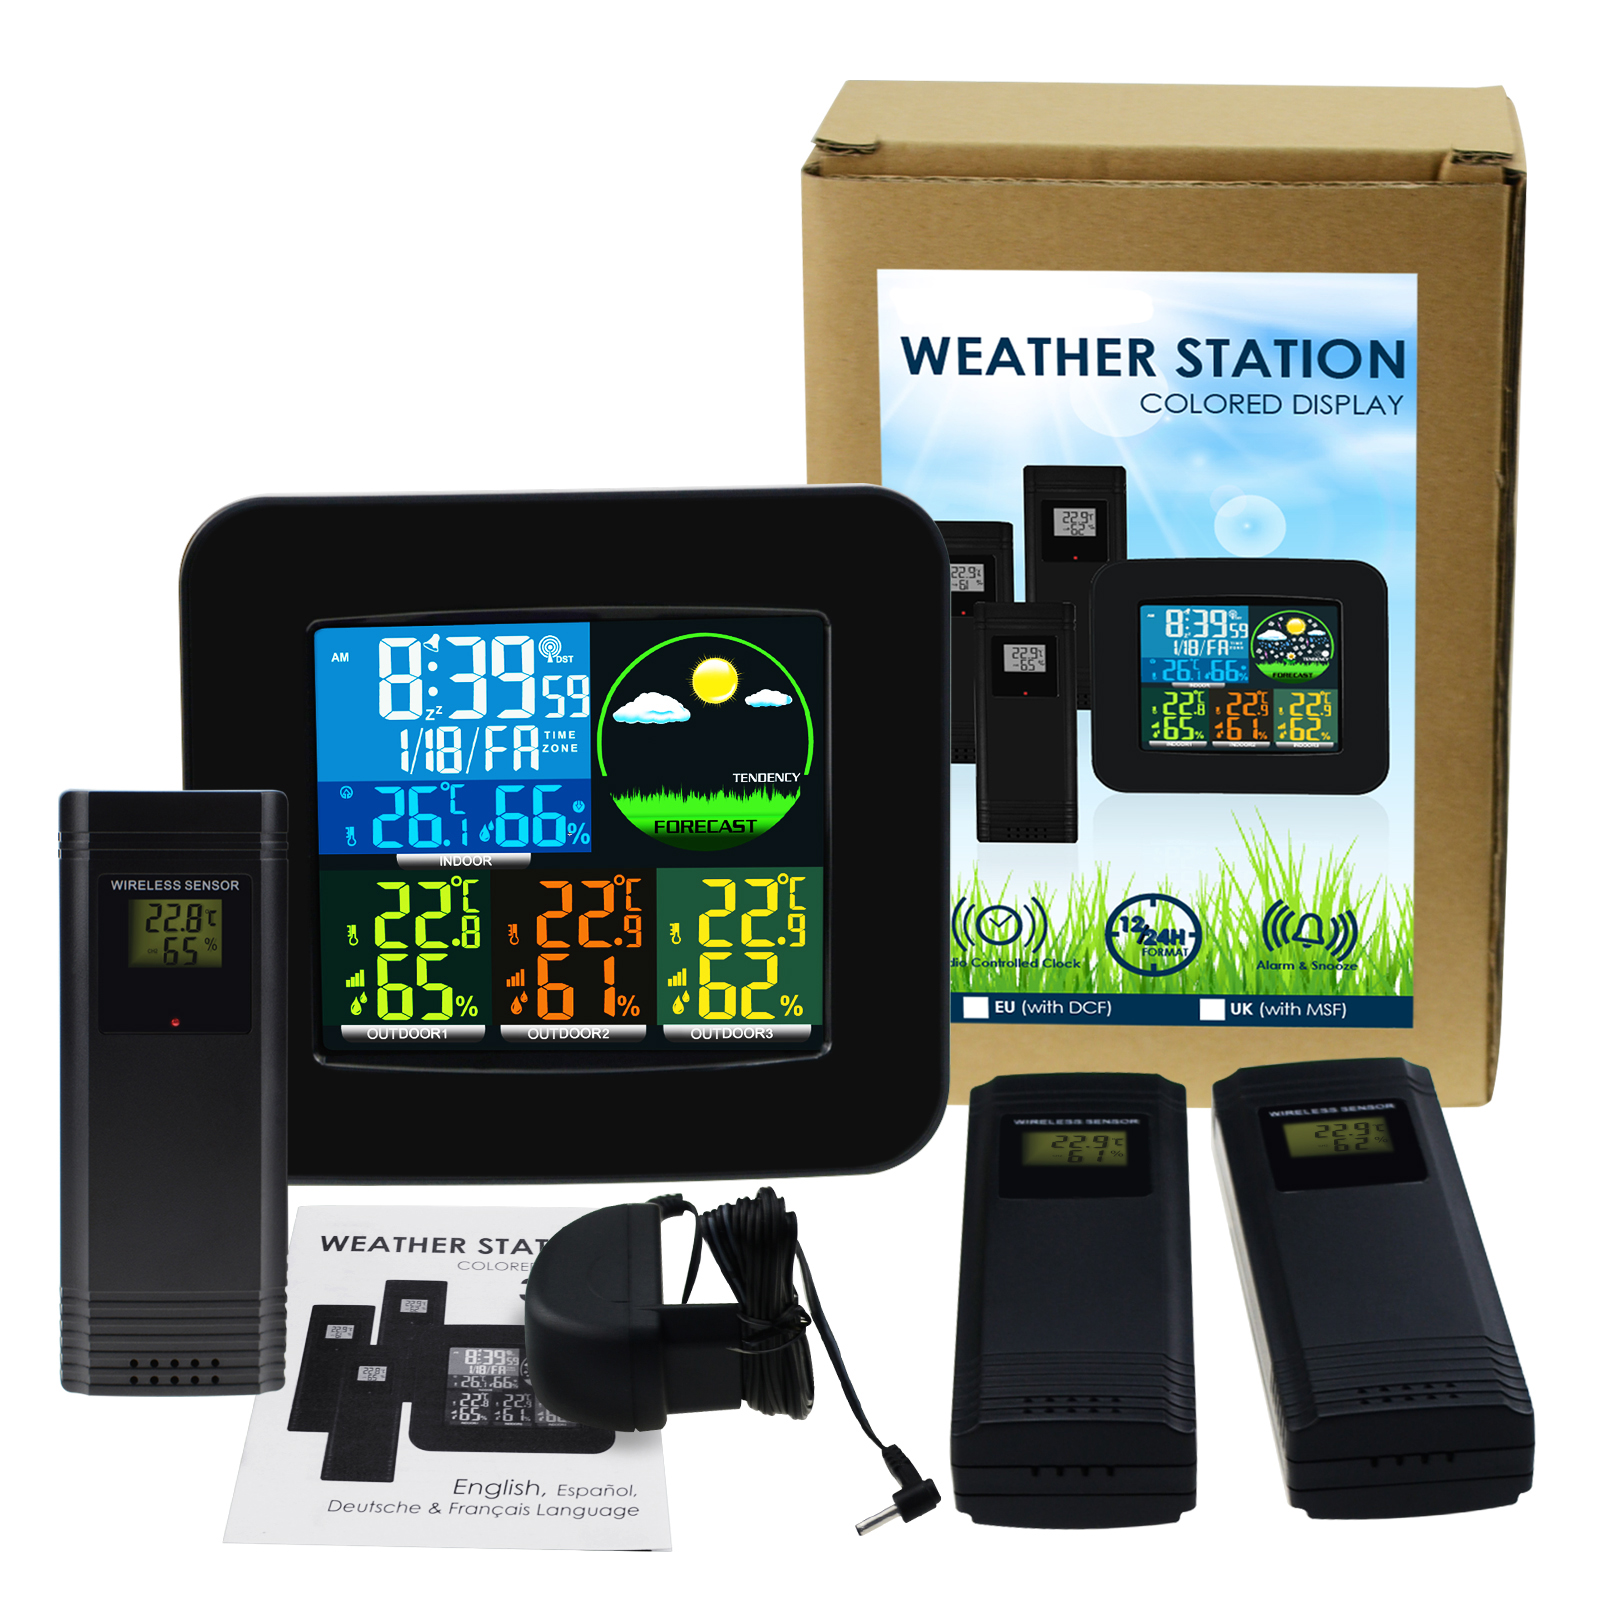 Weather Station RCC DCF MSF with 3 Wireless Sensor Alarm Clock 6 Weather Forecast LCD Colored